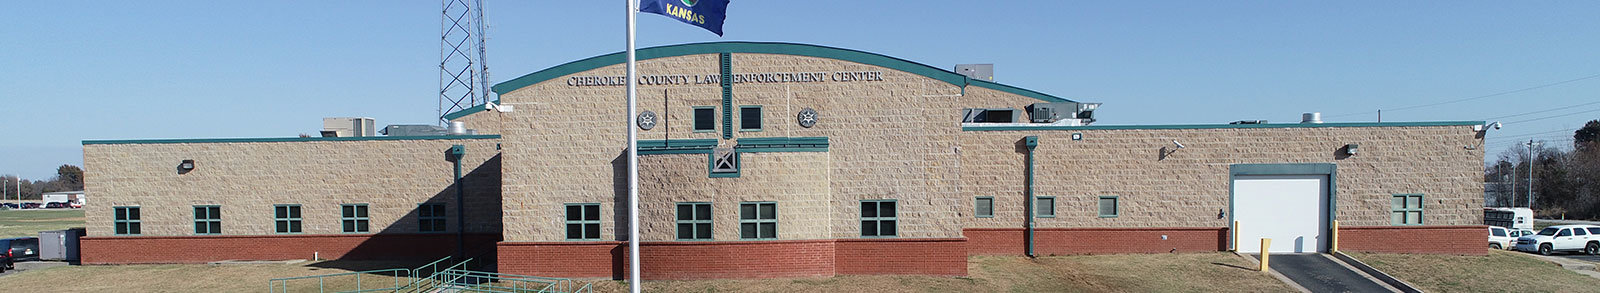 Cherokee County Kansas Law Enforcement Center